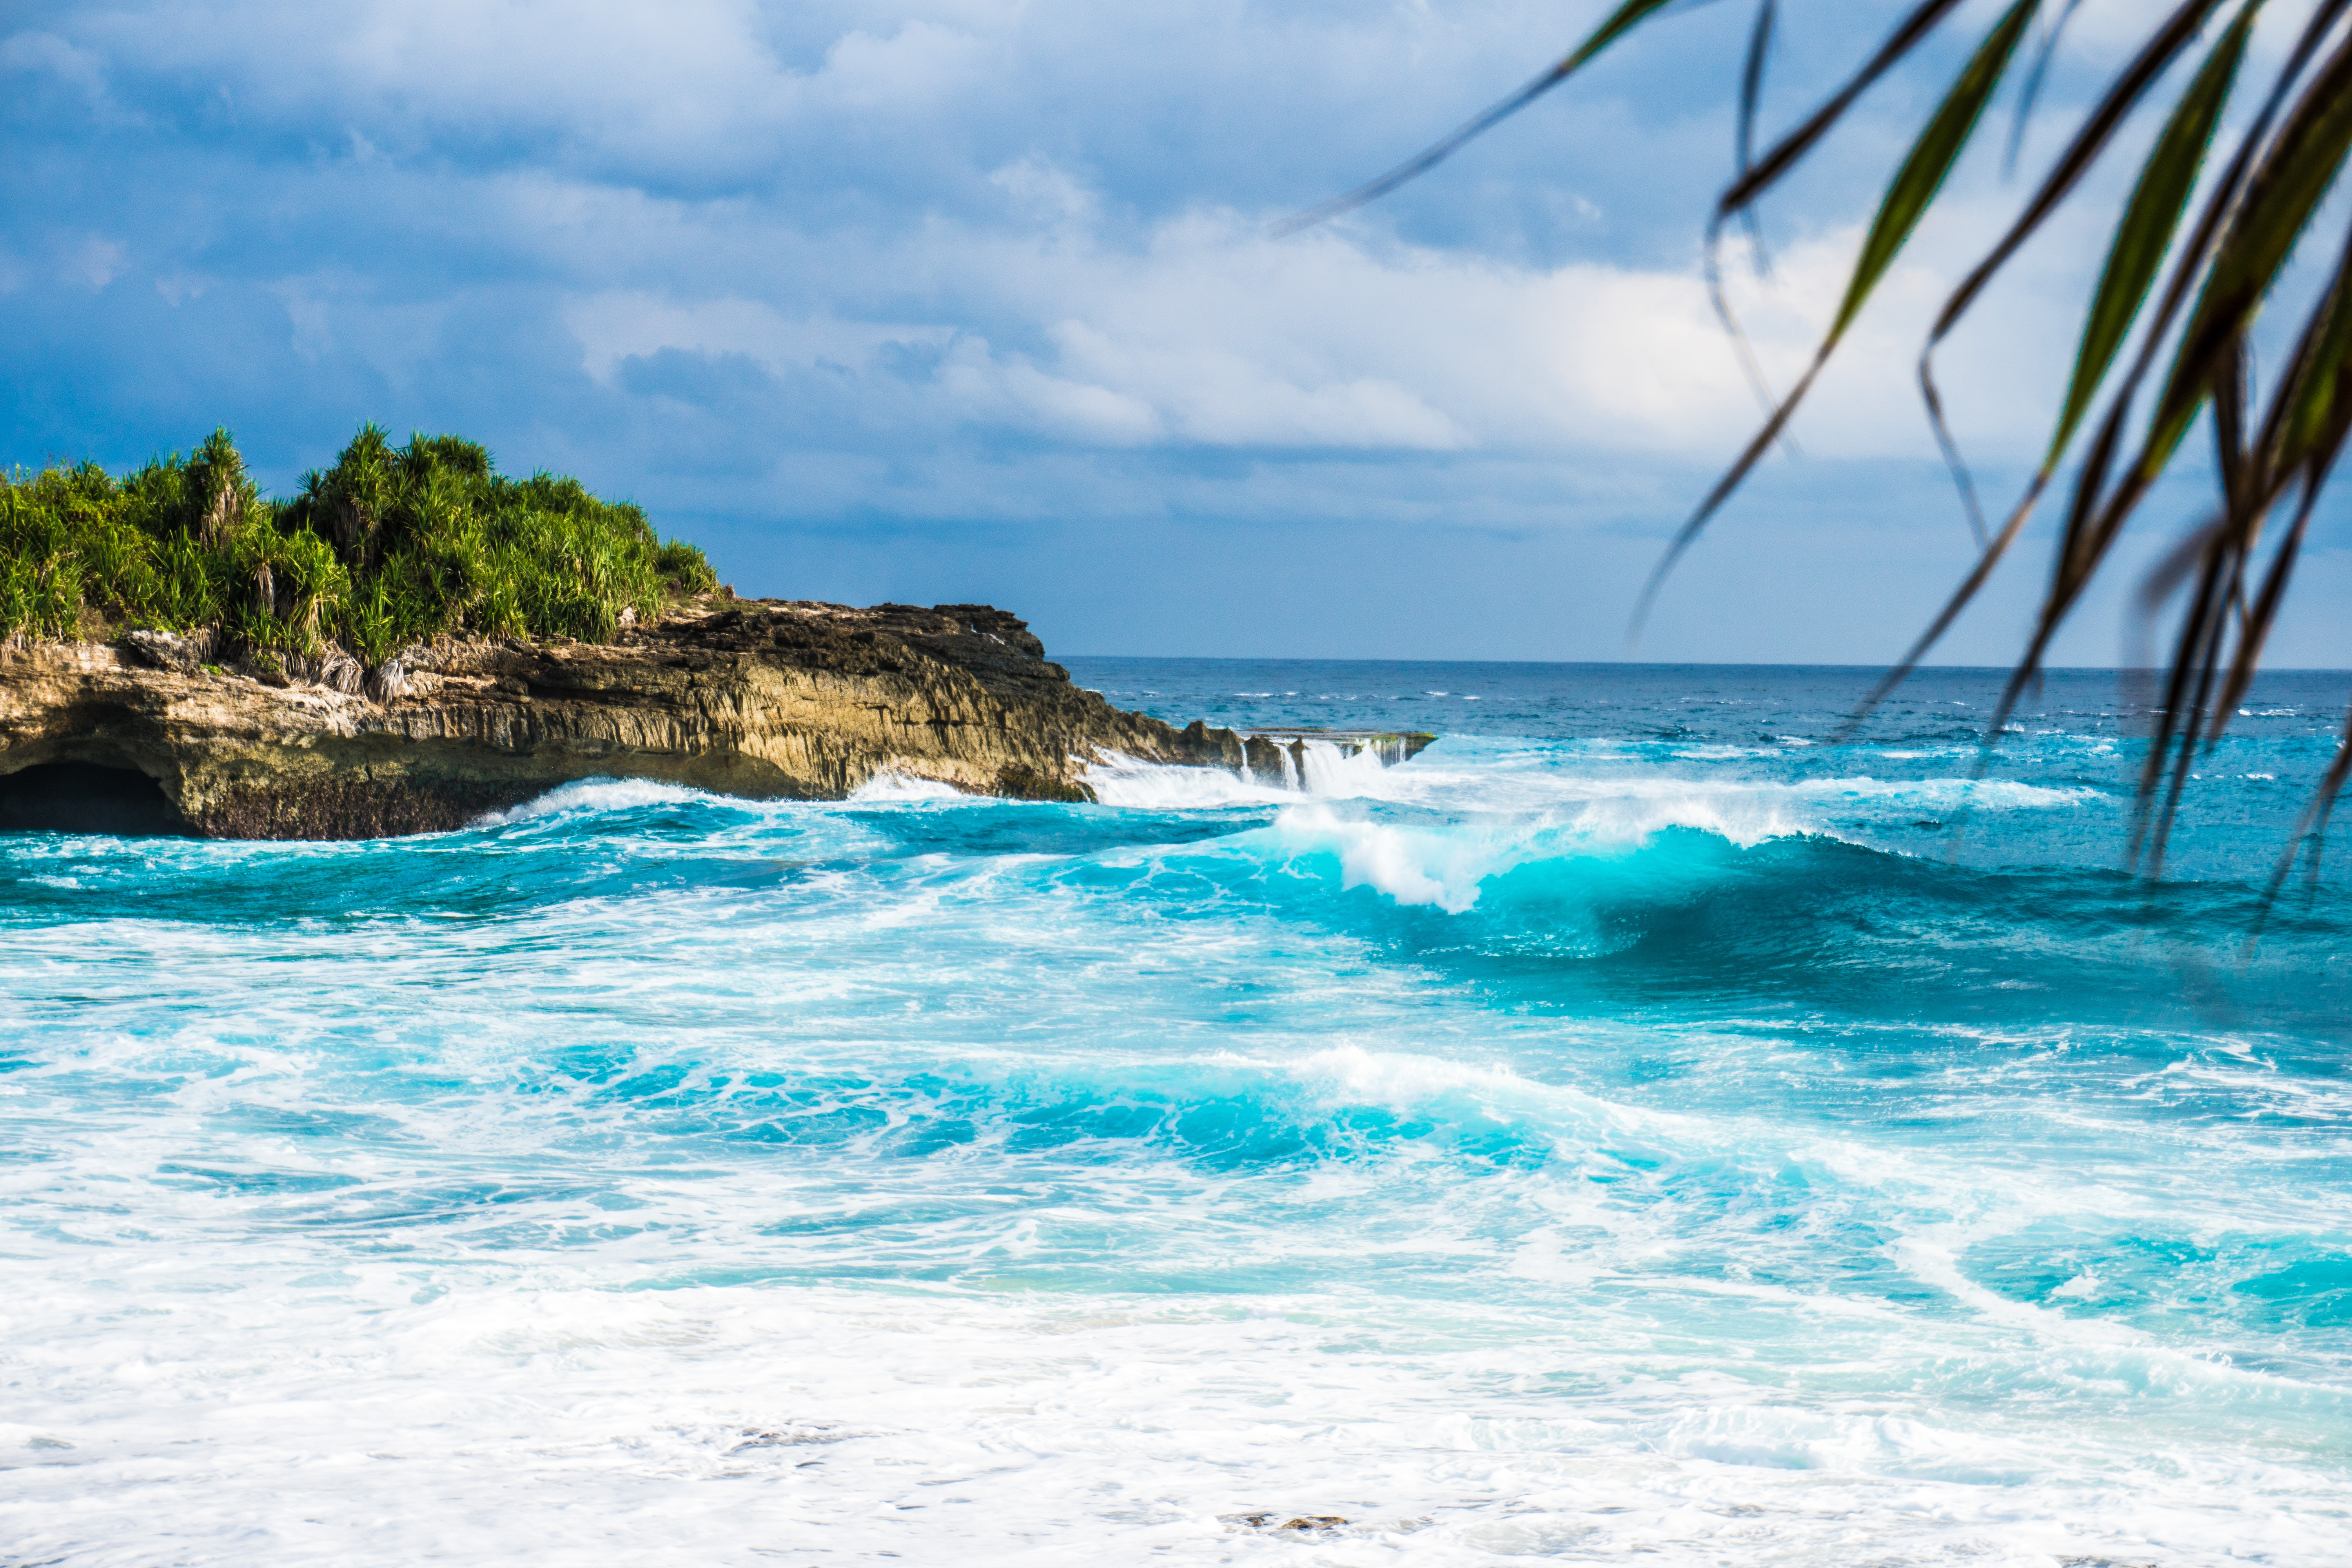 Breathtakingly blue waves crashing into rocky shore - Lembongan island, Indonesia